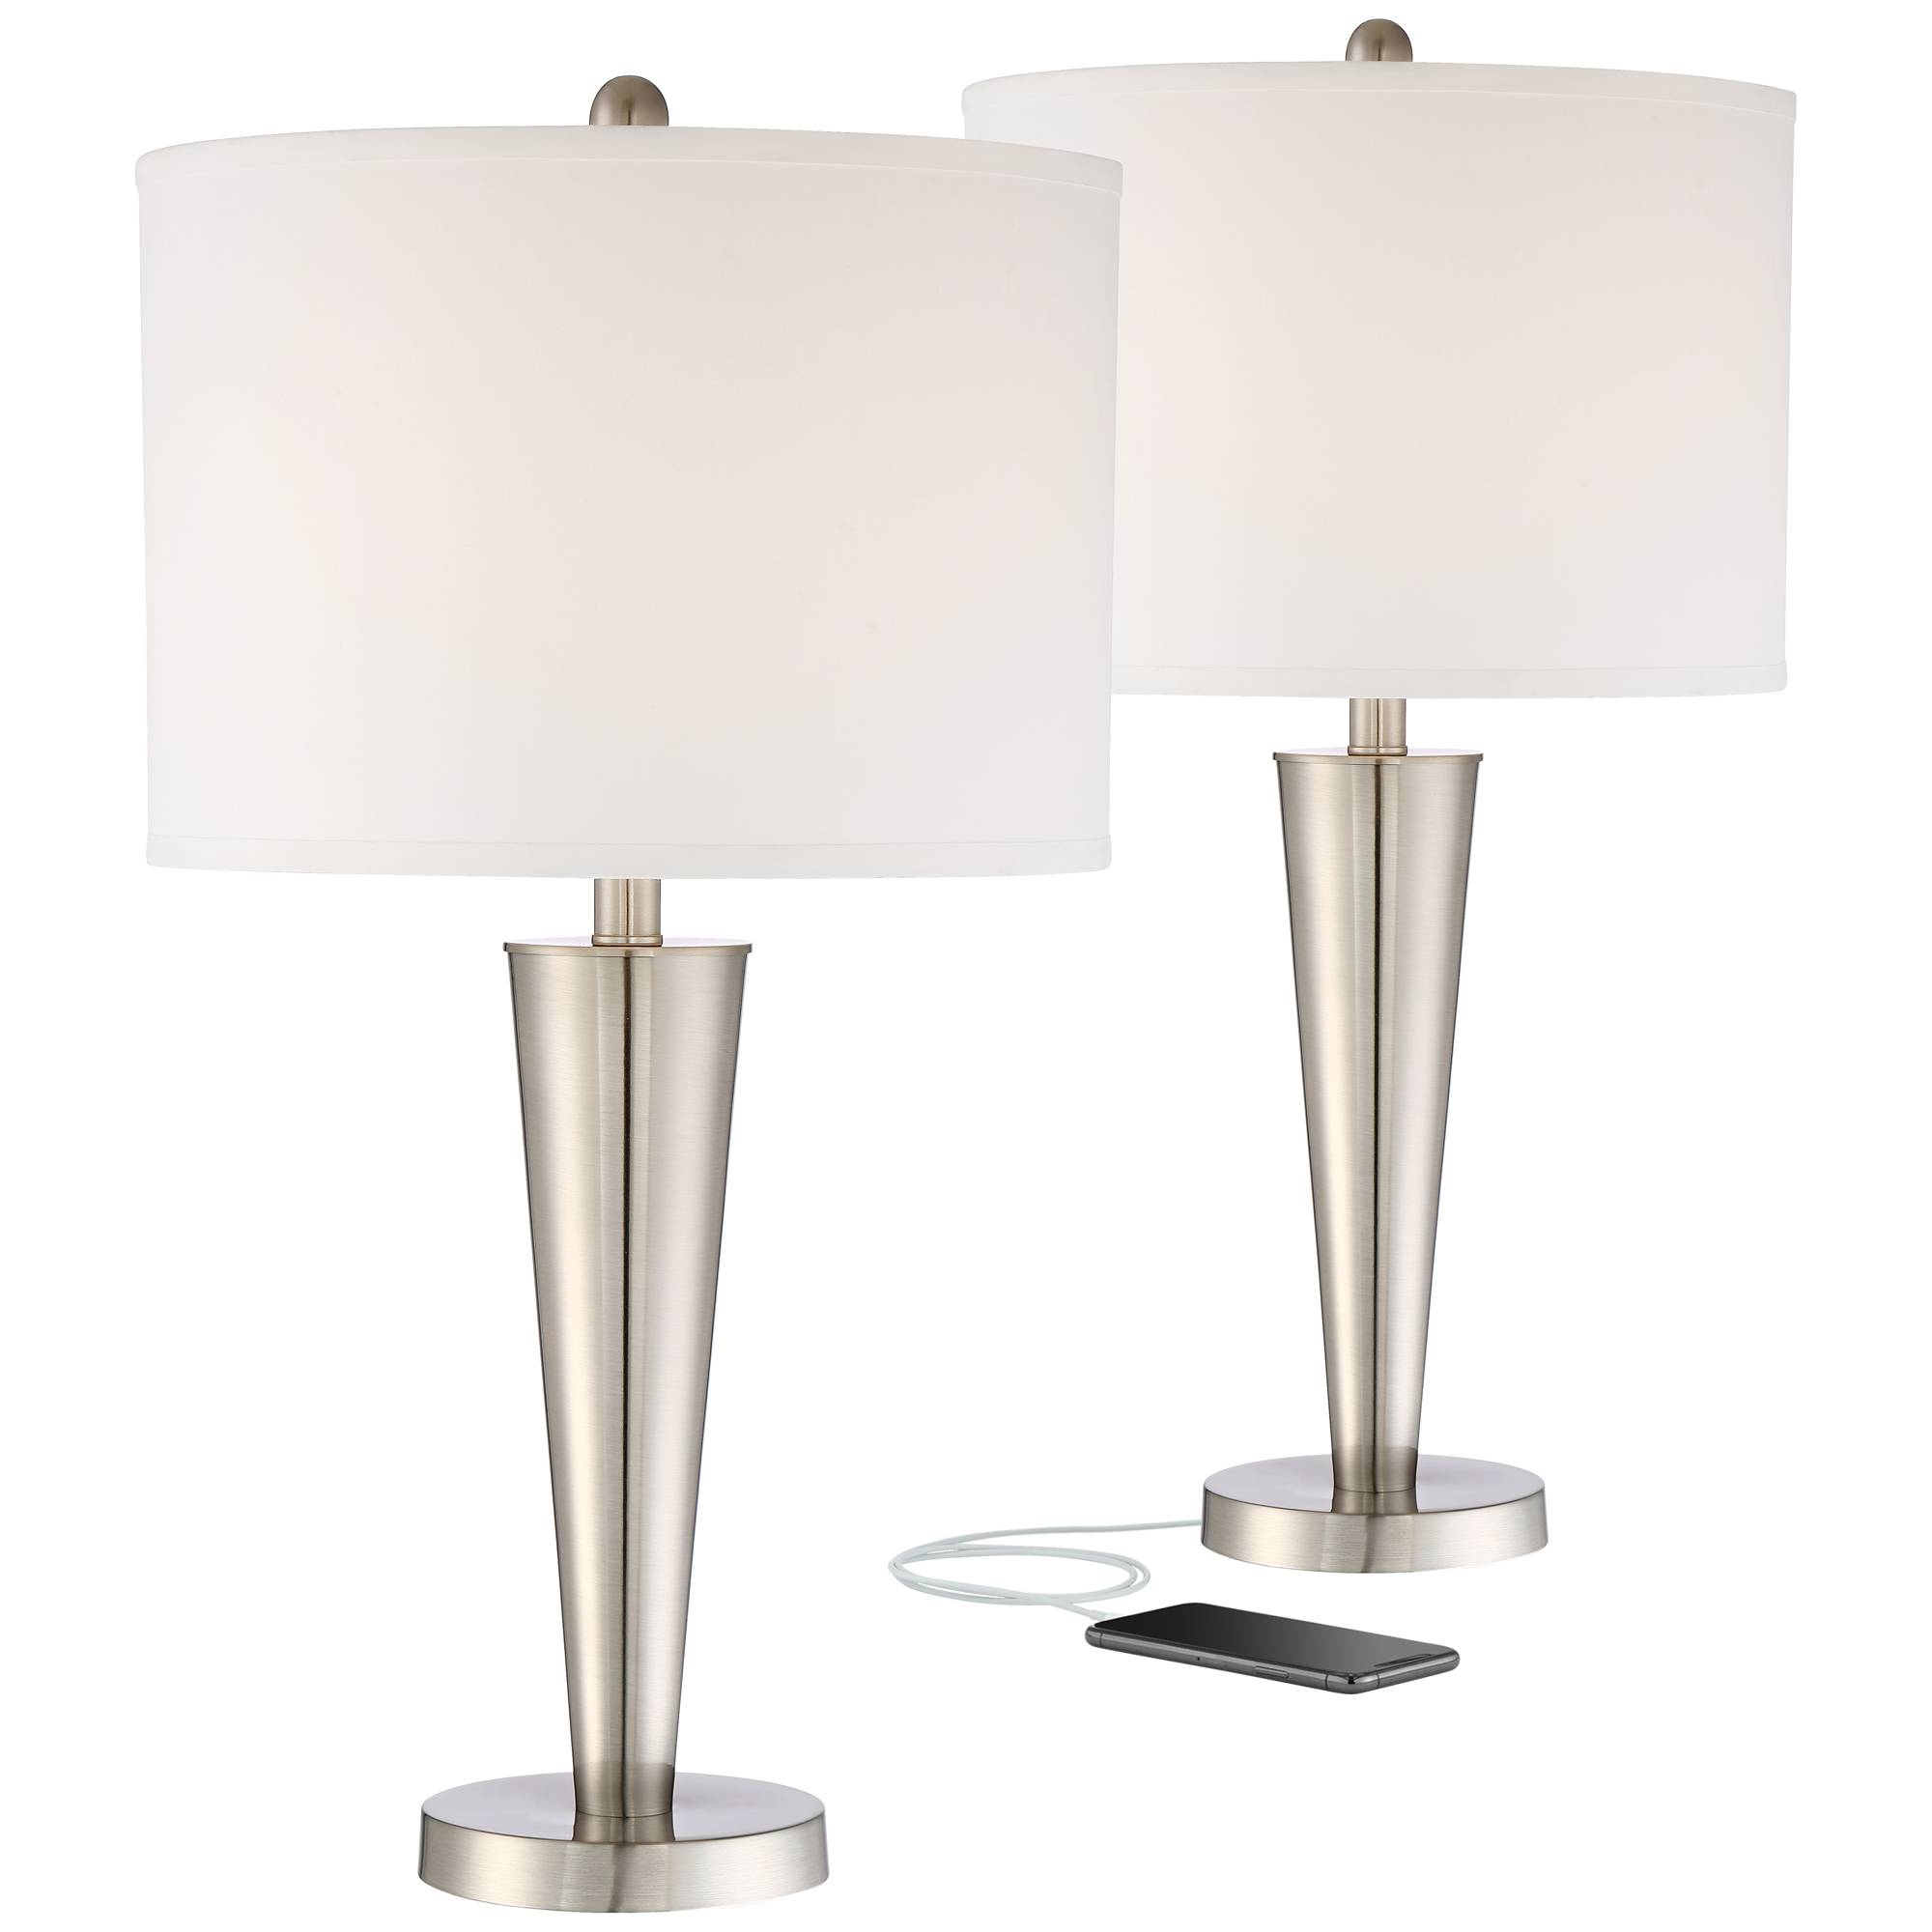 Details About Modern Table Lamps Set Of 2 With Usb Brushed Steel For Living Room